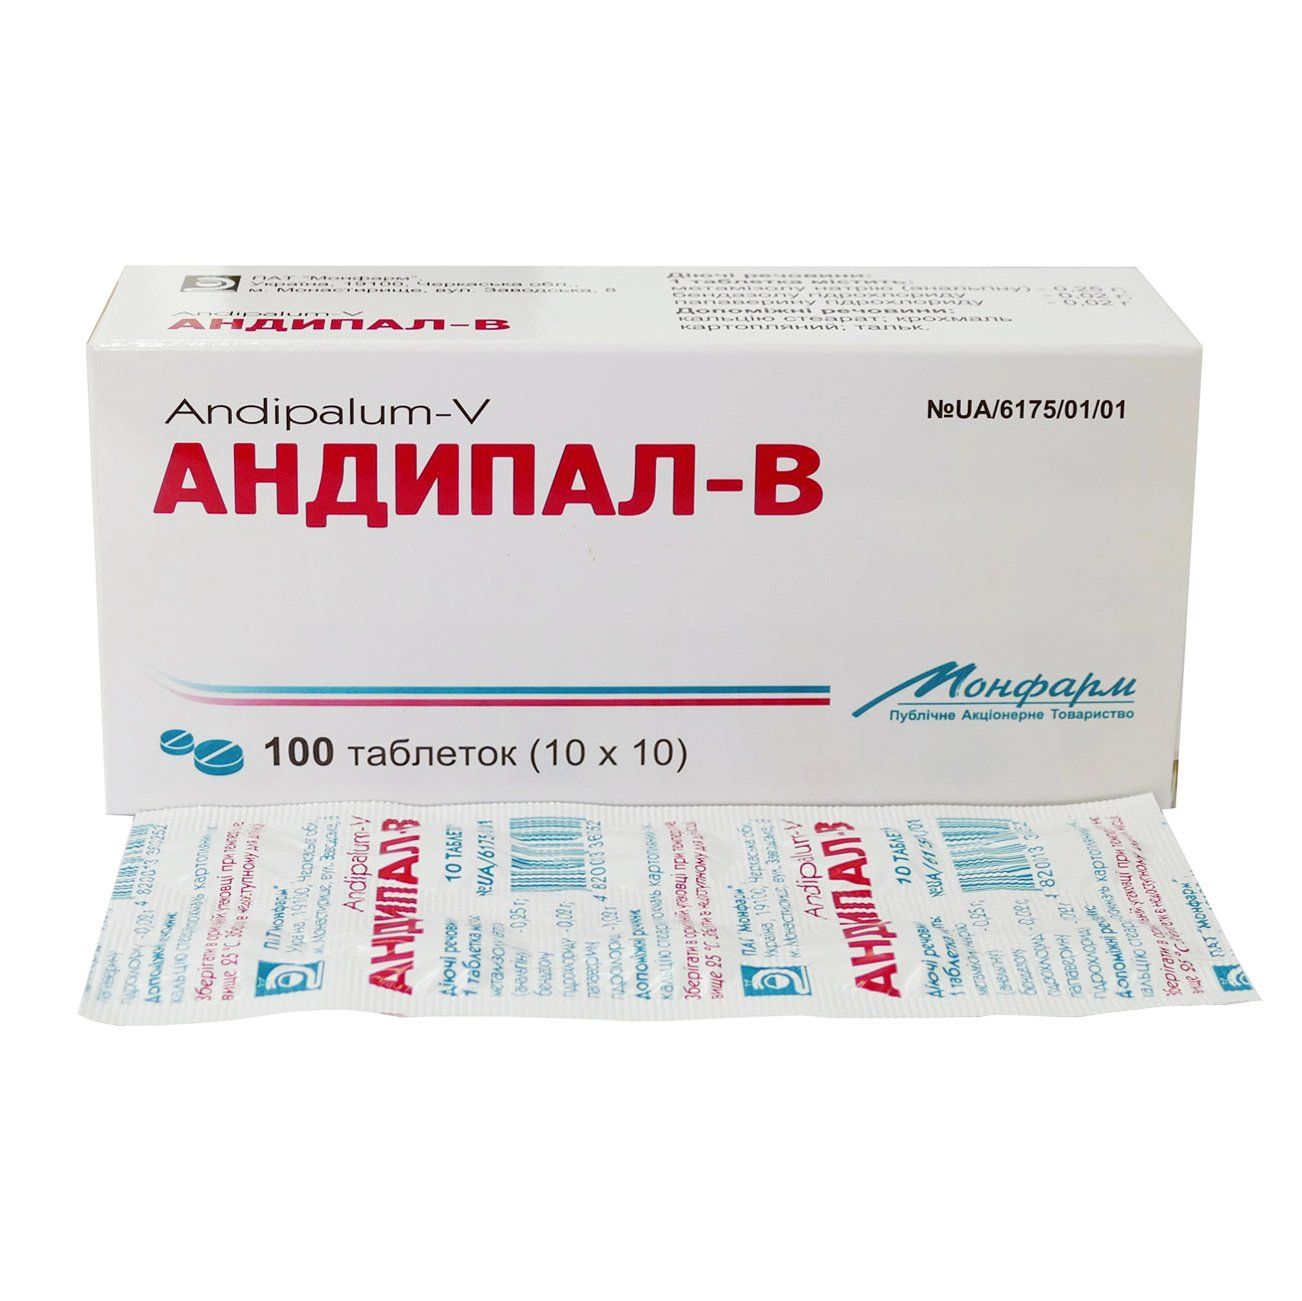 Andipal-V (metamizole sodium) tablets №100